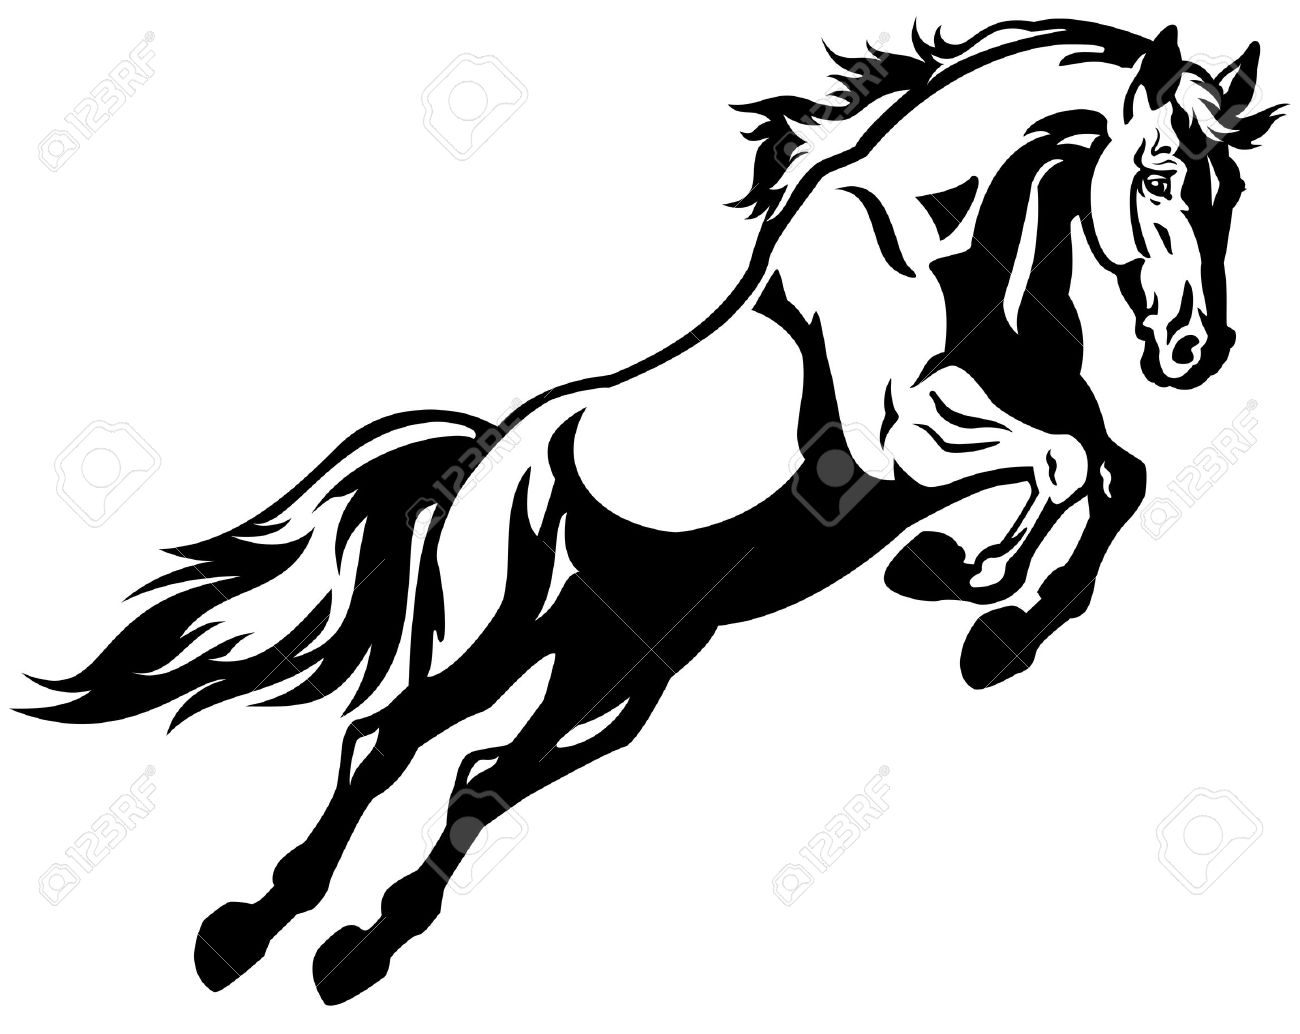 Jumping Horse Black And White Picture Isolated On White Background Royalty Free Cliparts Vectors And Stock Illustration Image 17144846